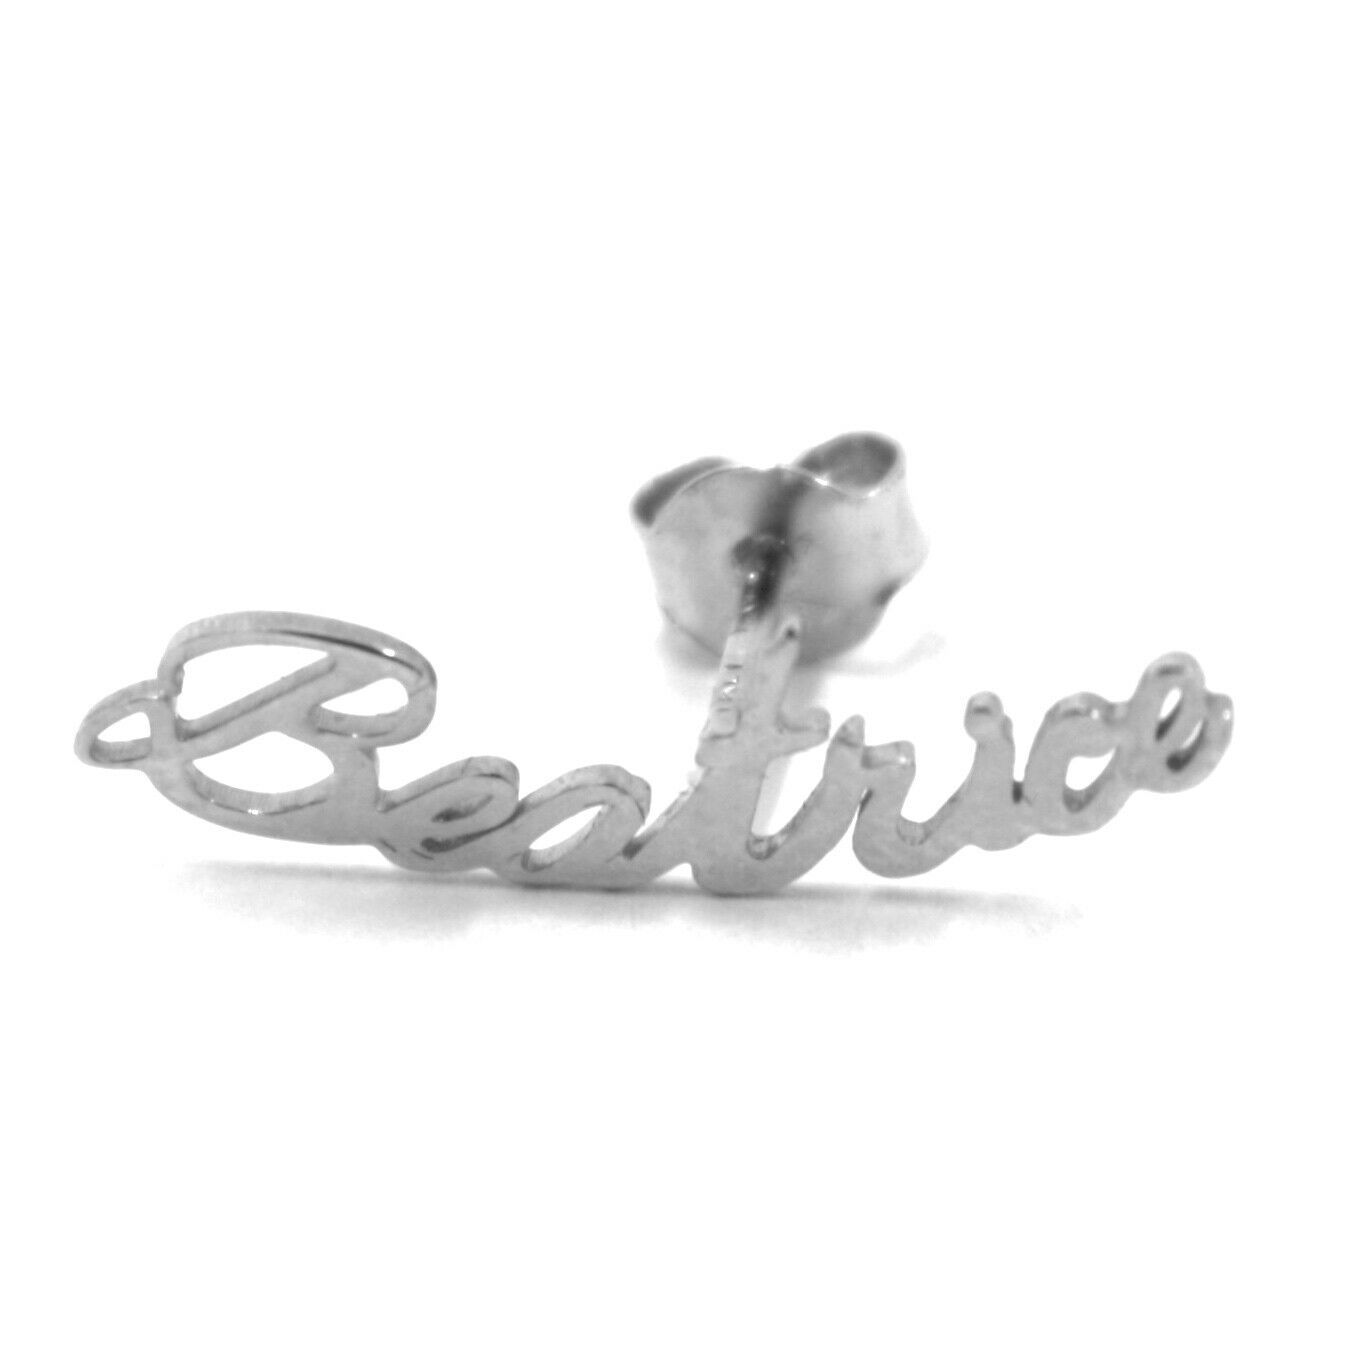 925 STERLING SILVER EARRINGS, WRITTEN NAME BEATRICE, MADE IN ITALY